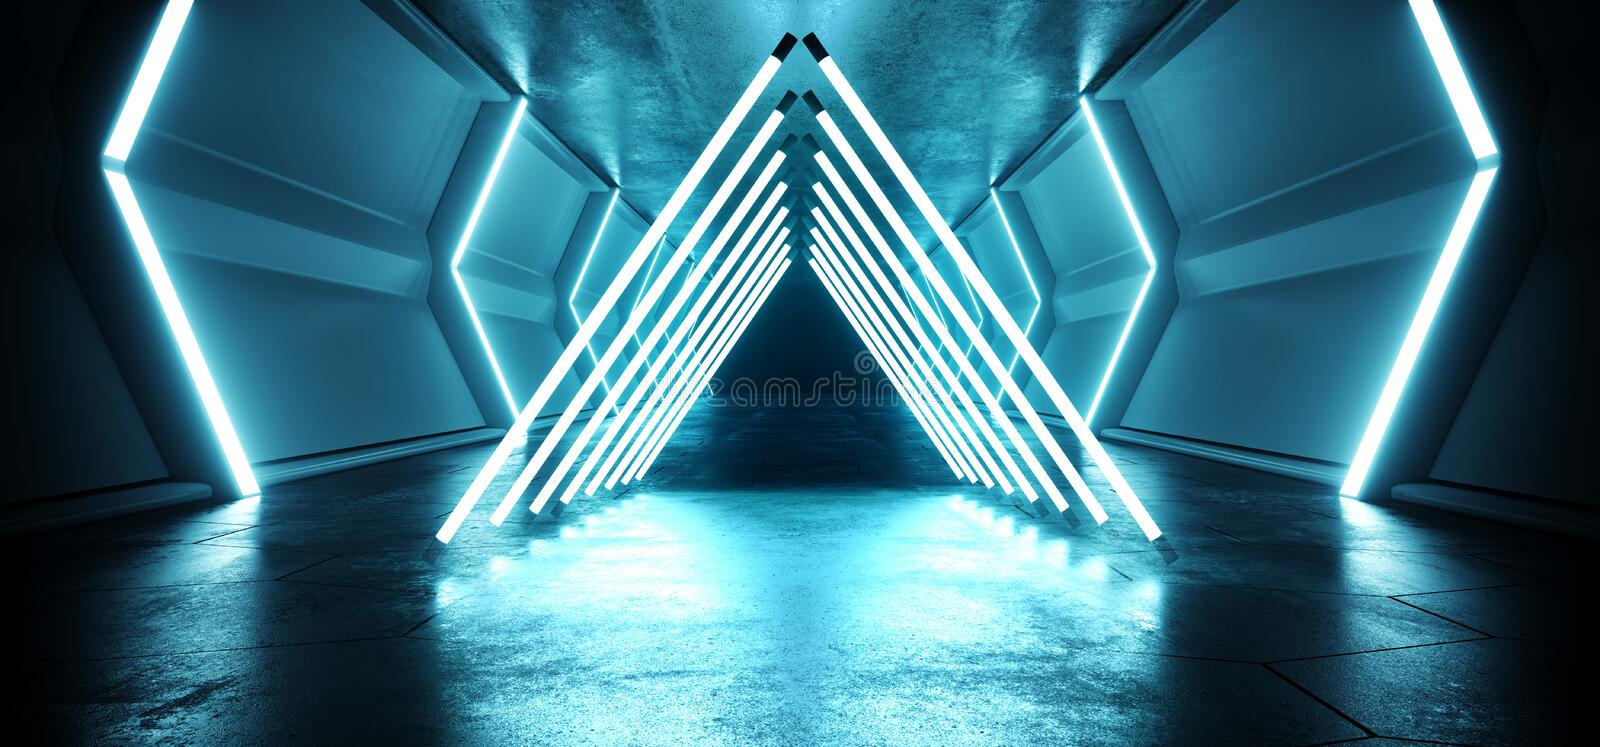 Triangle Futuristic Sci FI Alien Spaceship Neon Laser Led Blue Glowing Tunnel Metal Reflection Grunge Concrete Floor Wet Gate royalty free illustration